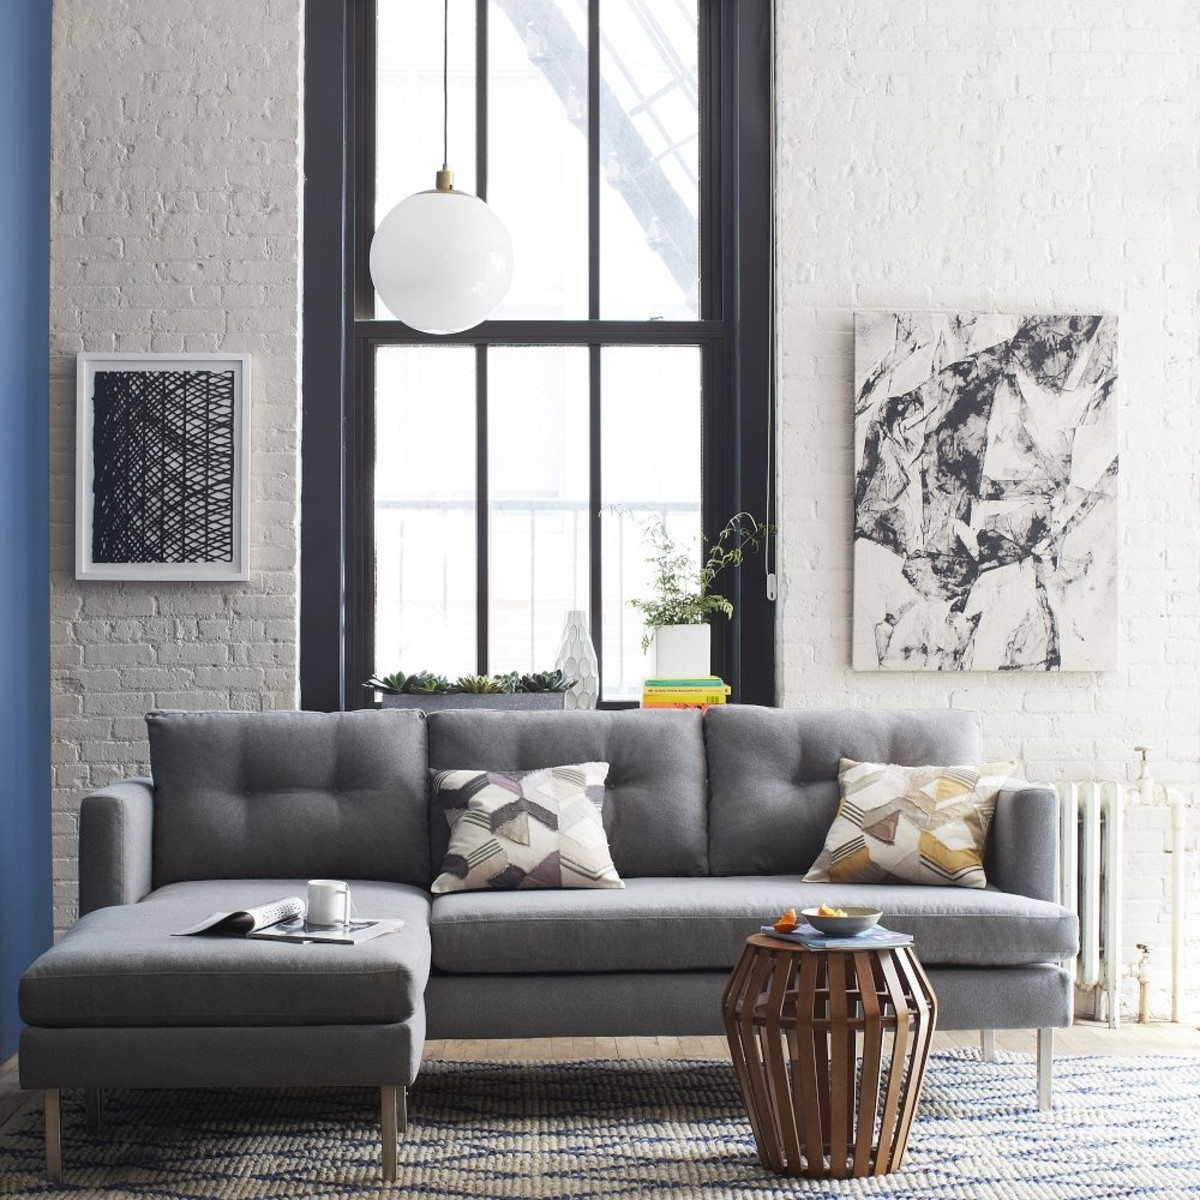 Jackson 2-Piece Chaise Sectional - Heather Grey Aud1809 | West Elm within West Elm Sectional Sofas